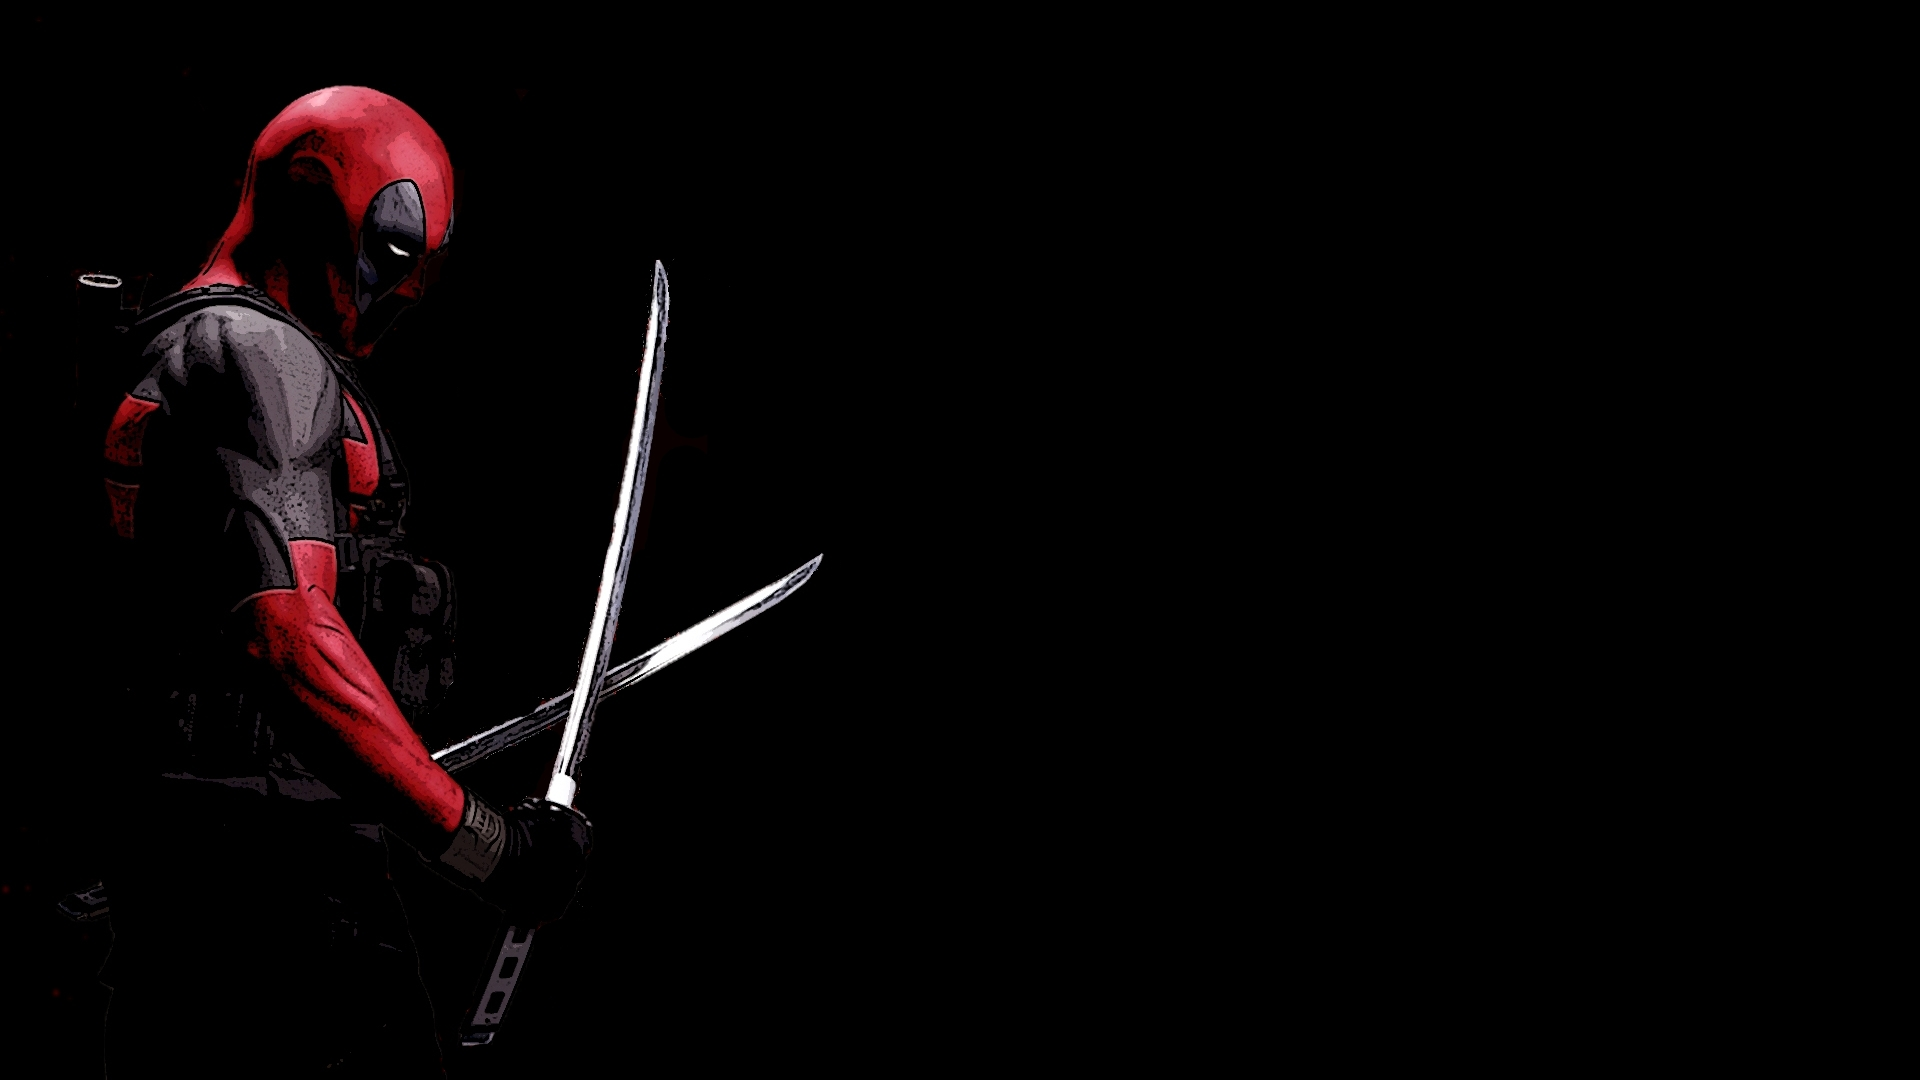 Deadpool Wallpapers Pictures Images 1920x1080